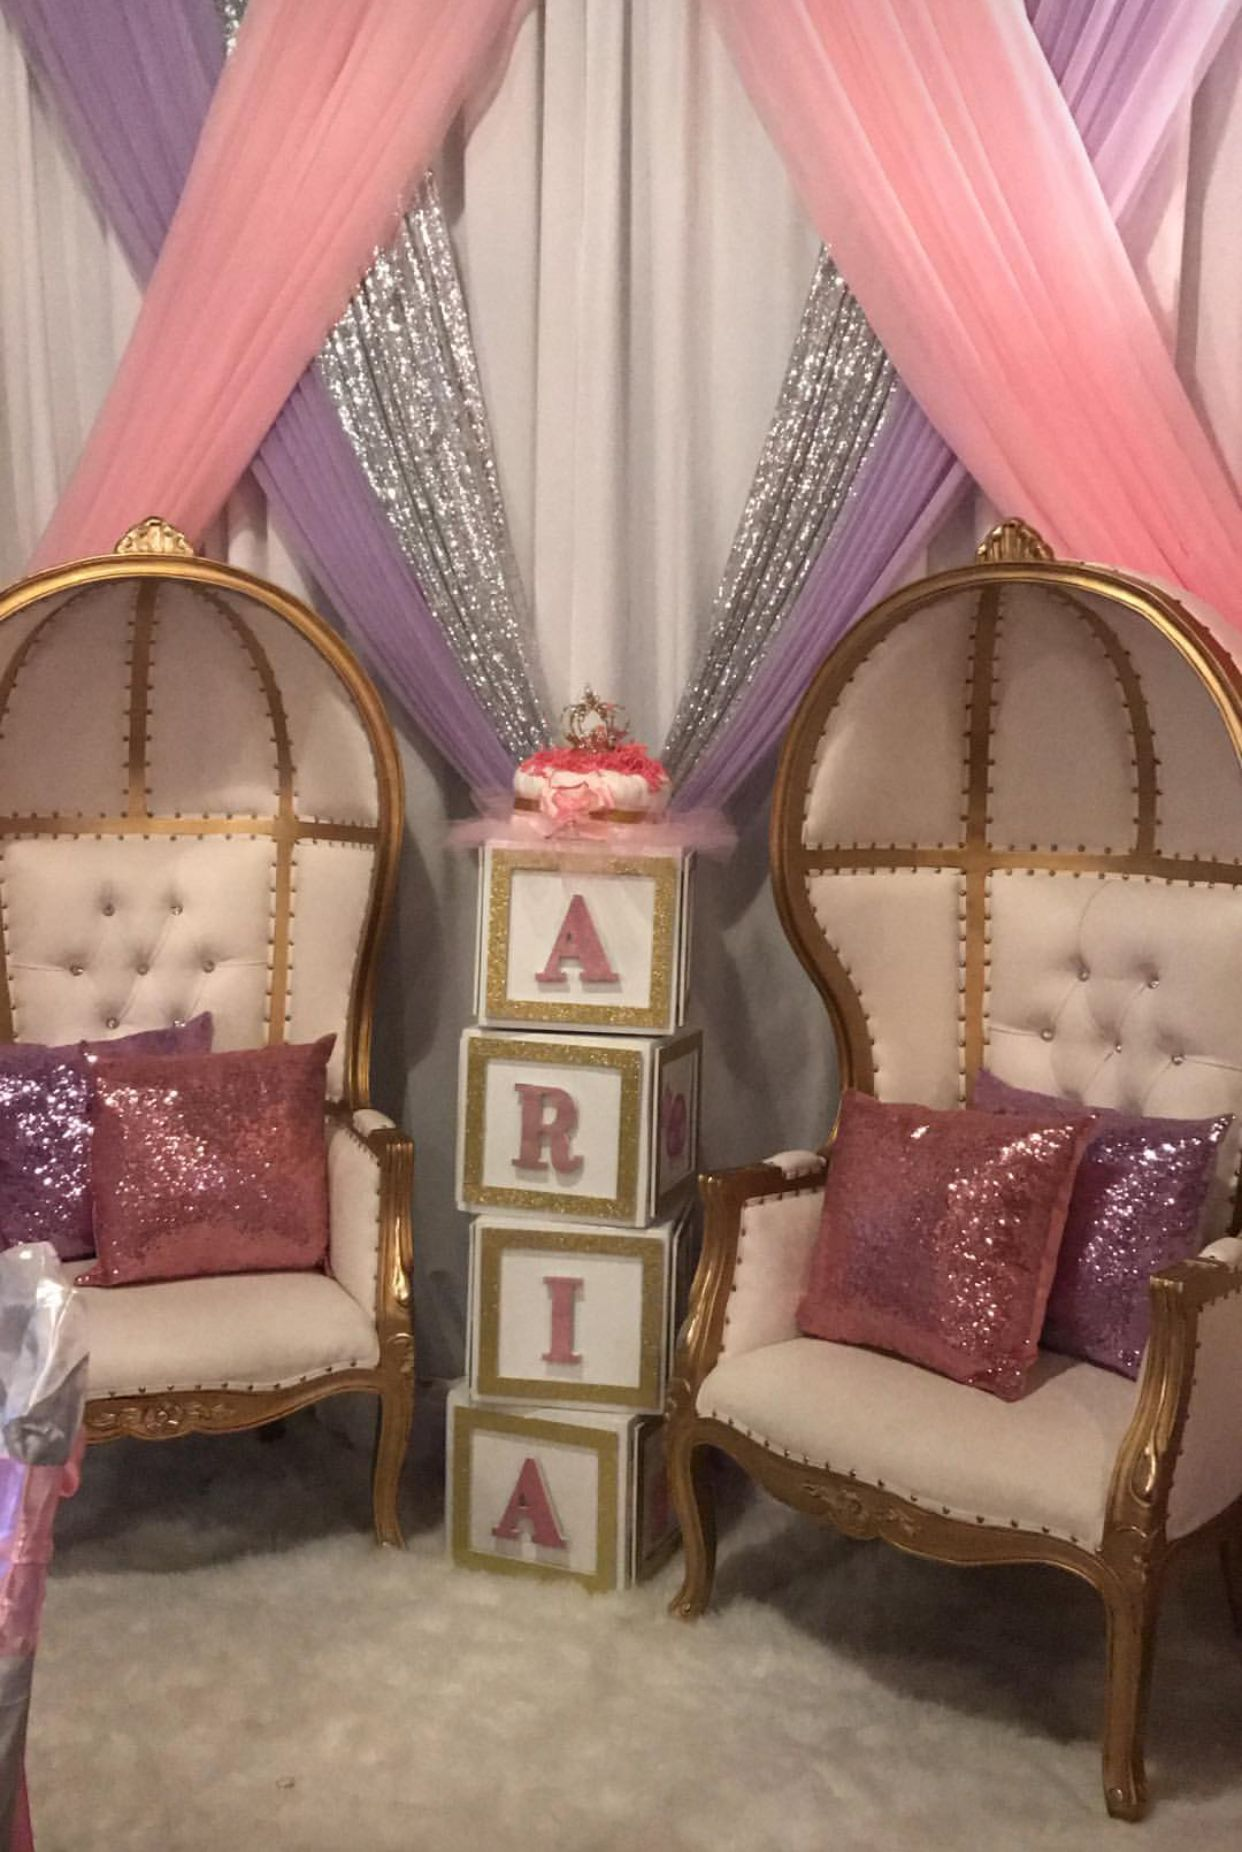 Pin on Baby shower decor